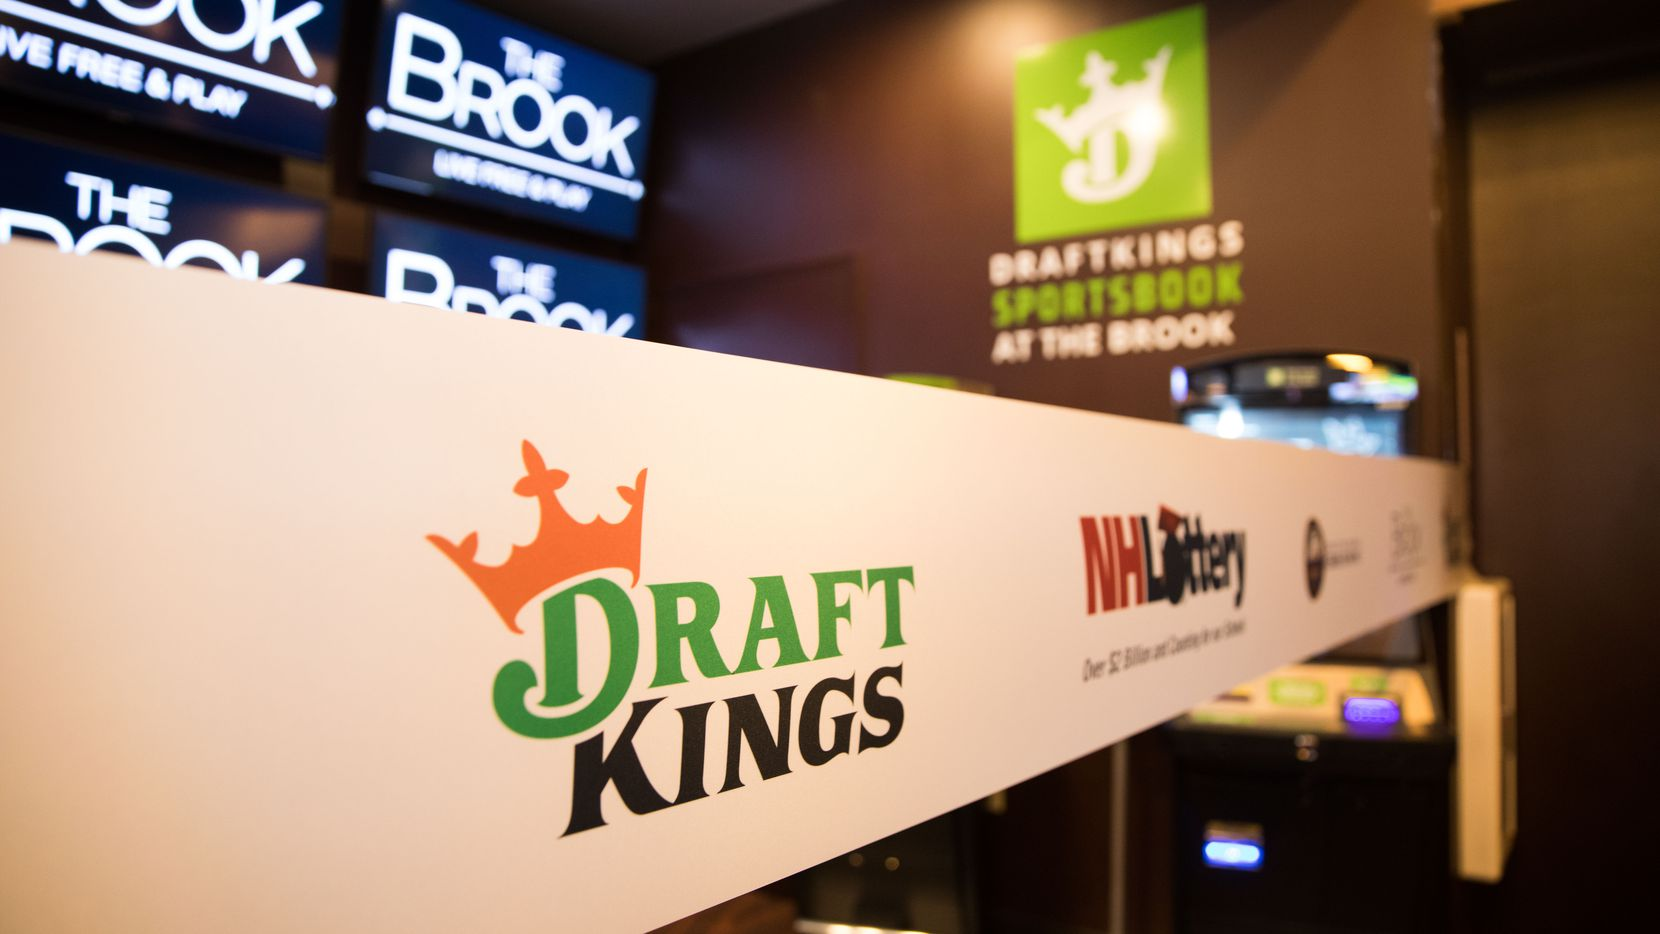 Signage at the DraftKings Sportsbook at The Brook ribbon cutting on October 23, 2020 in Seabrook, New Hampshire. A coalition of pro teams and mobile sports betting platforms want to legalize similar wagering in Texas. (Scott Eisen/Getty Images for DraftKings/TNS)